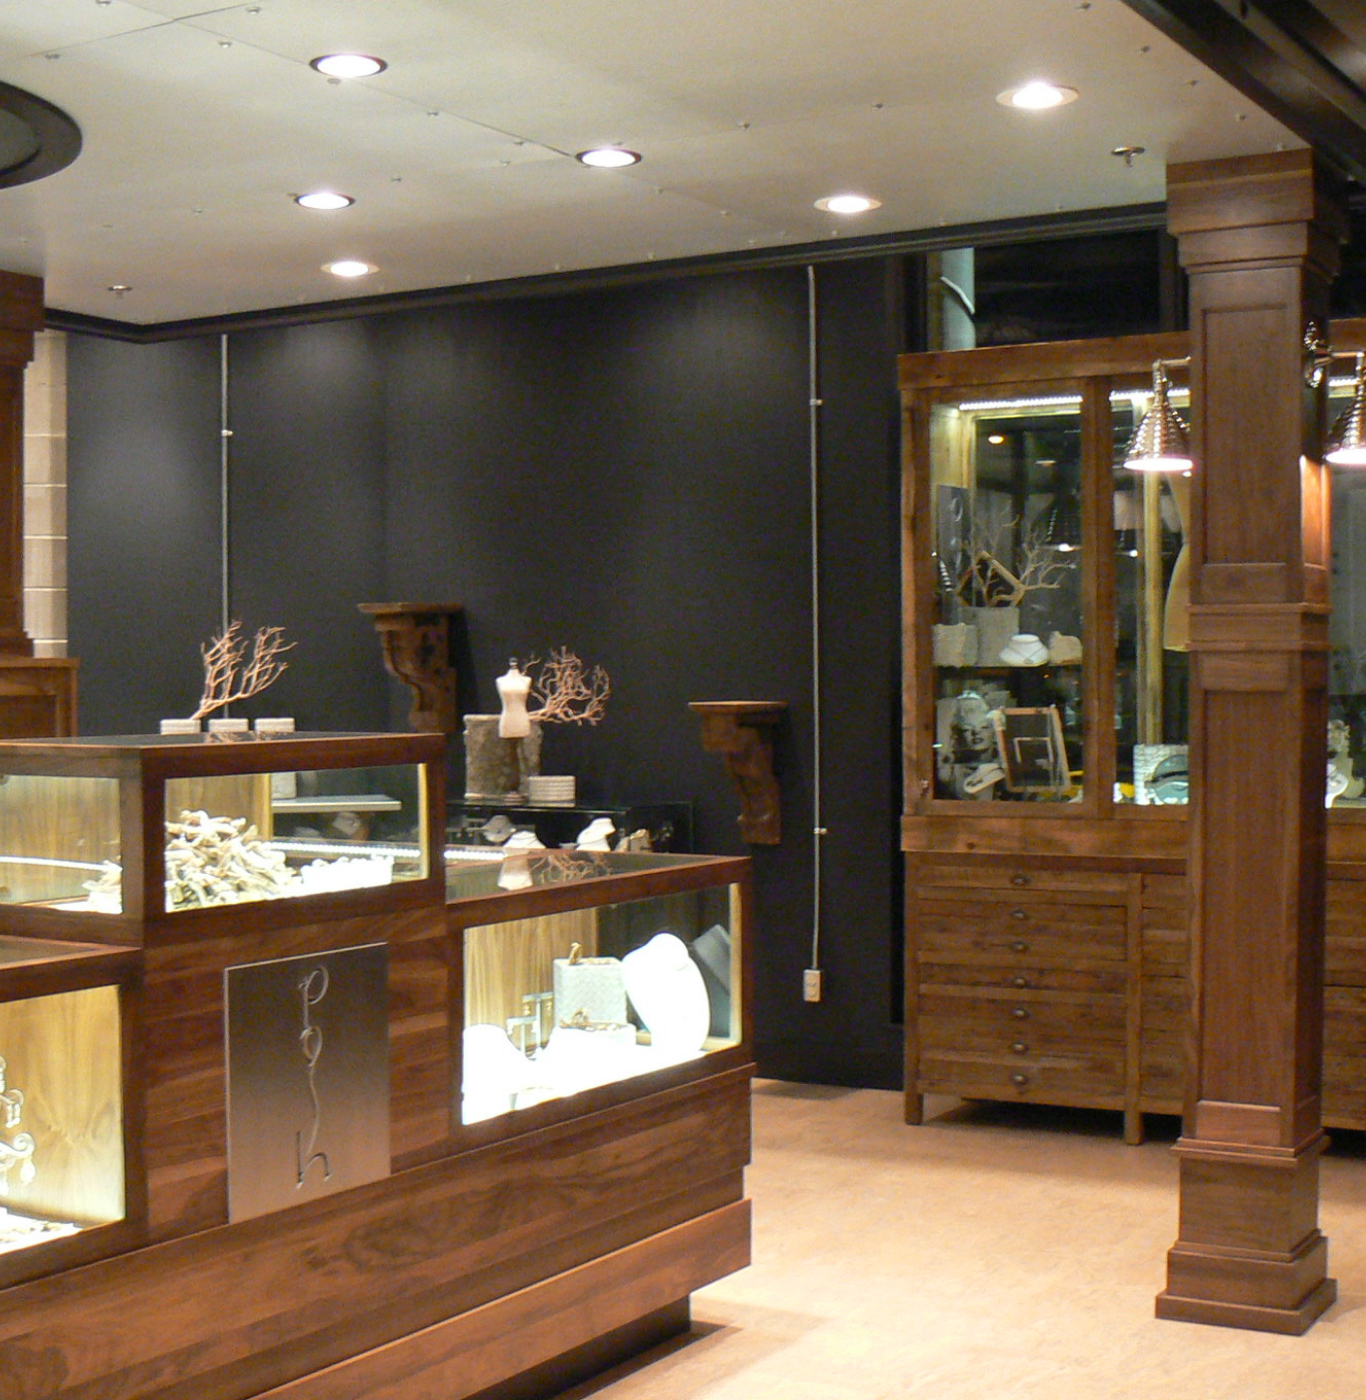 Wooden jewellery counter